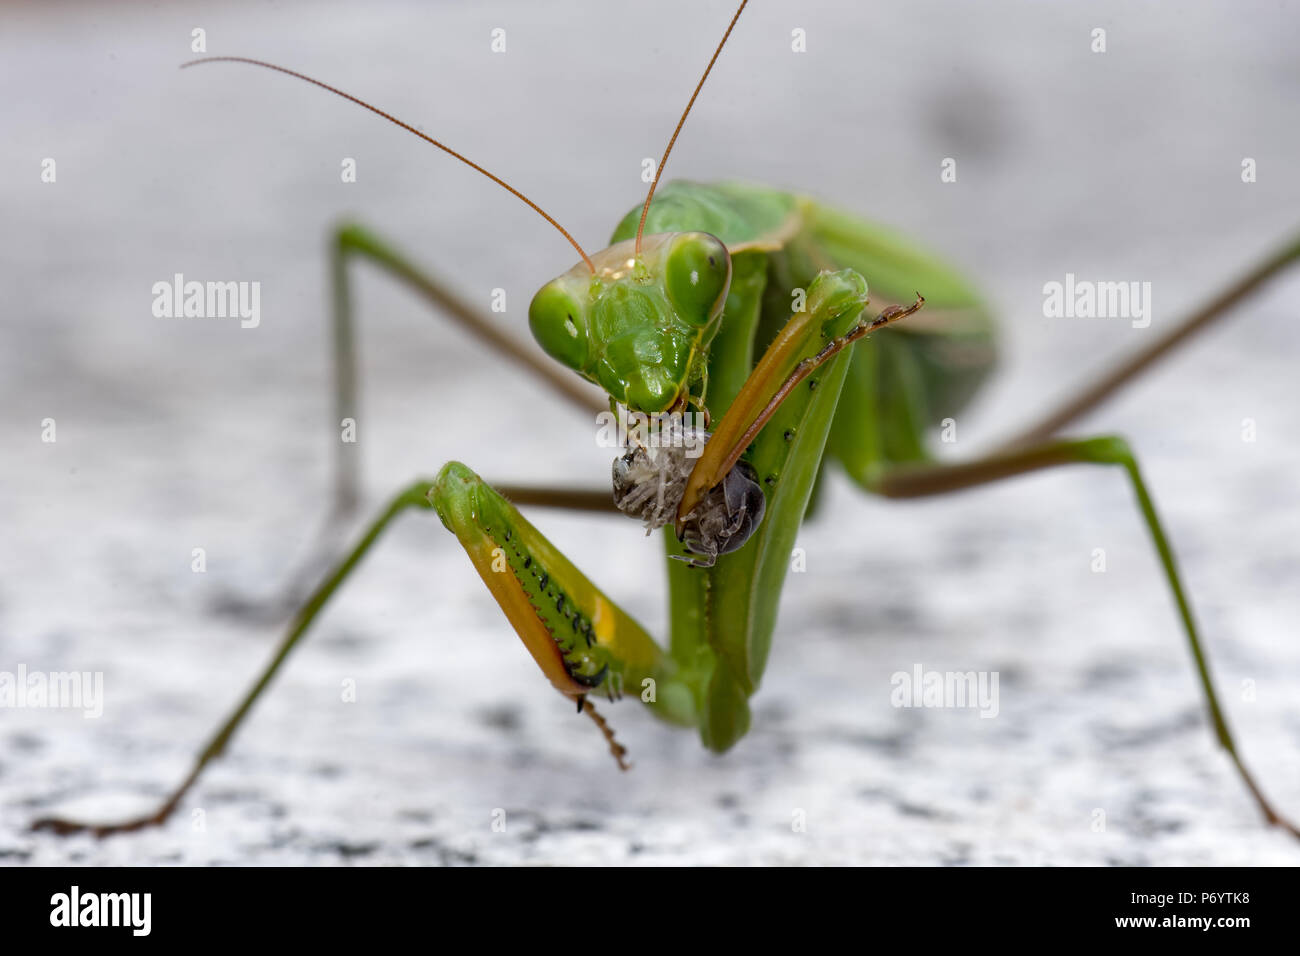 Color outdoor natural wildlife close up macro photography of a single isolated green praying mantis while eating - Stock Image